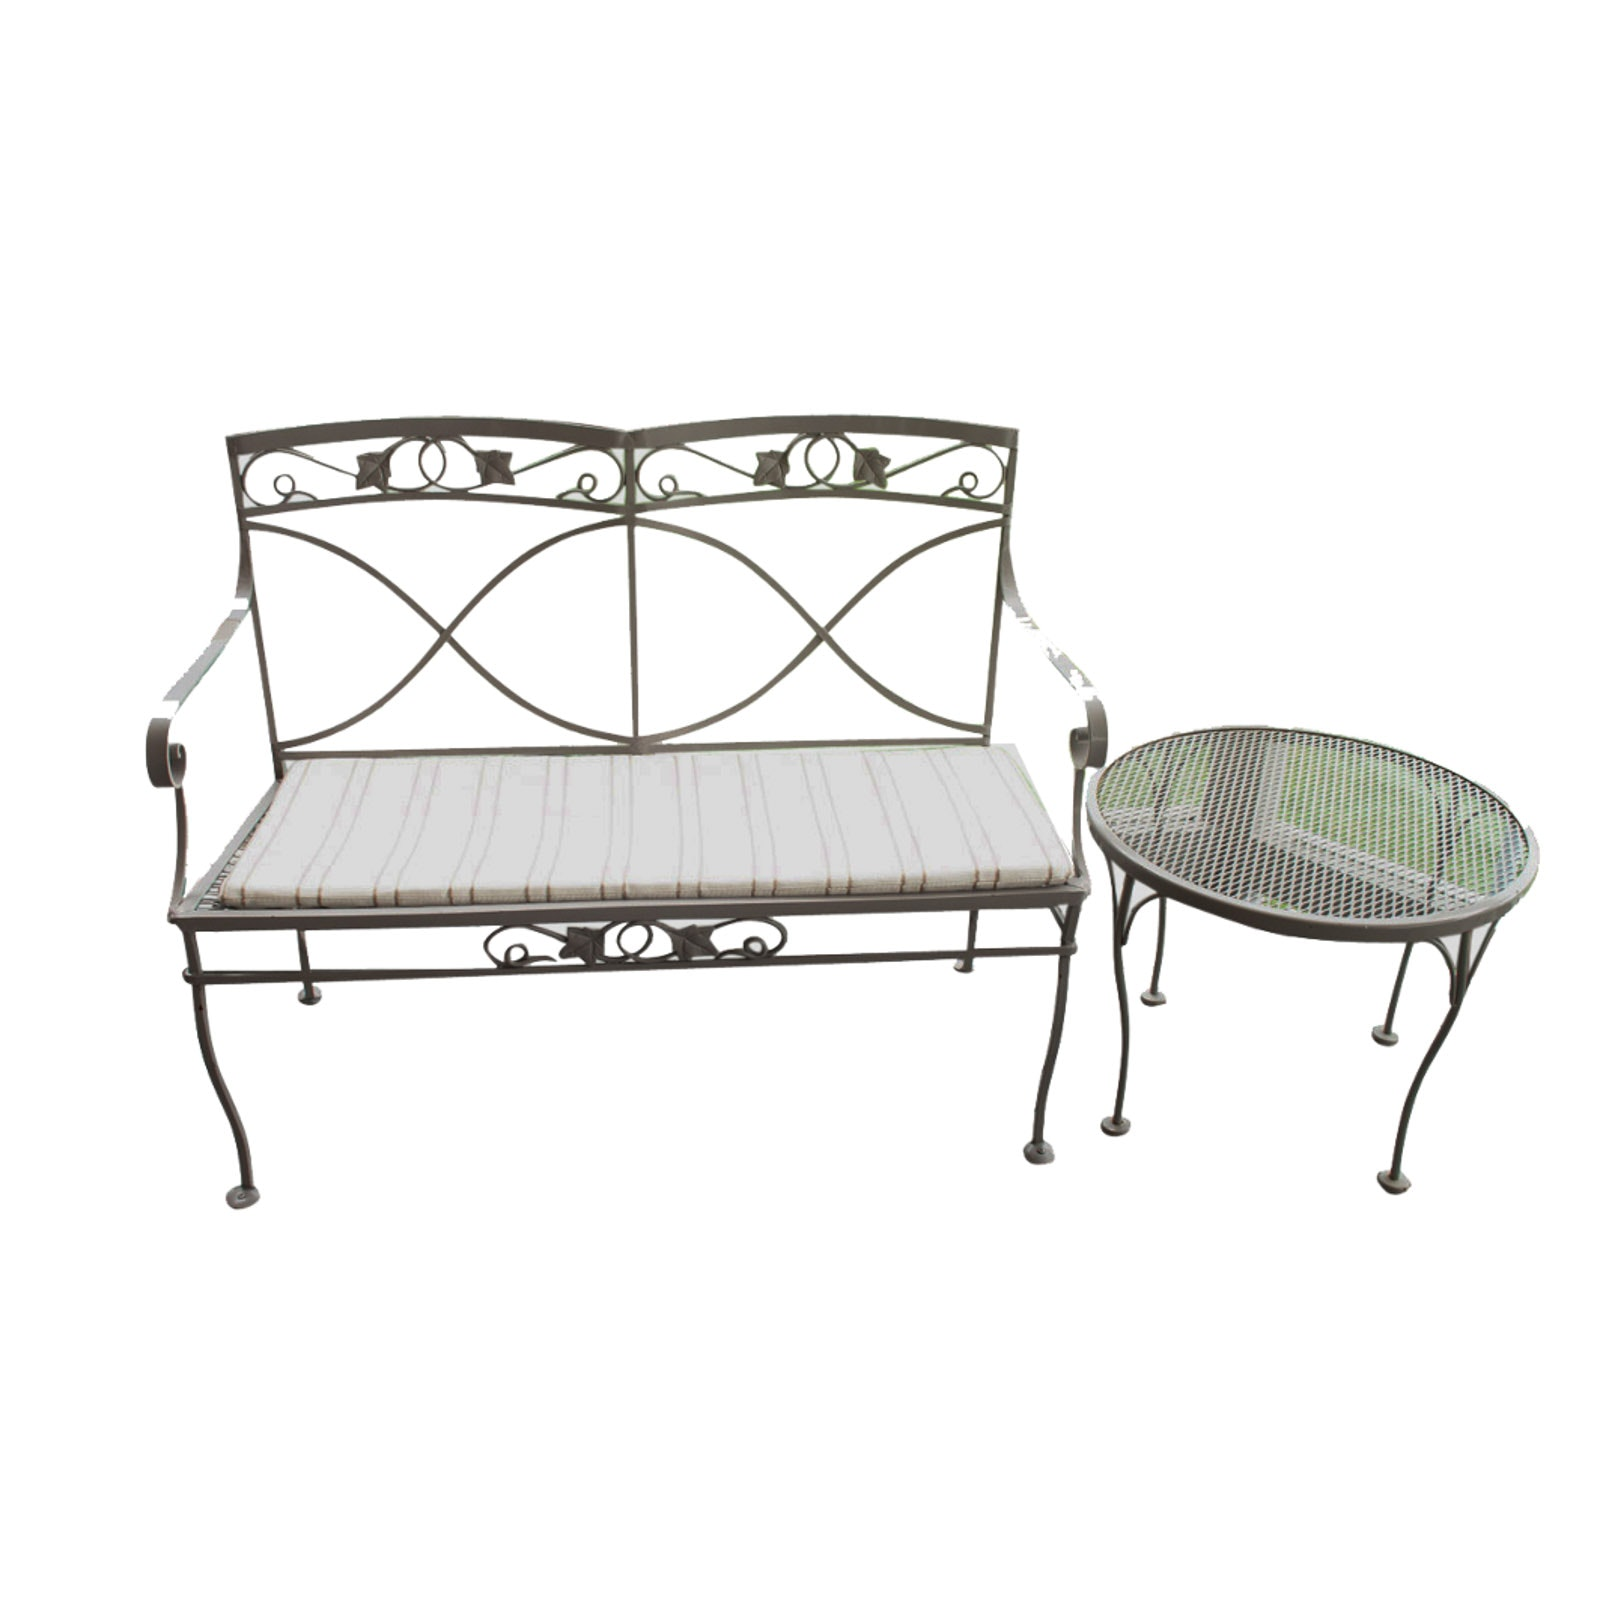 Metal Patio Bench and Table